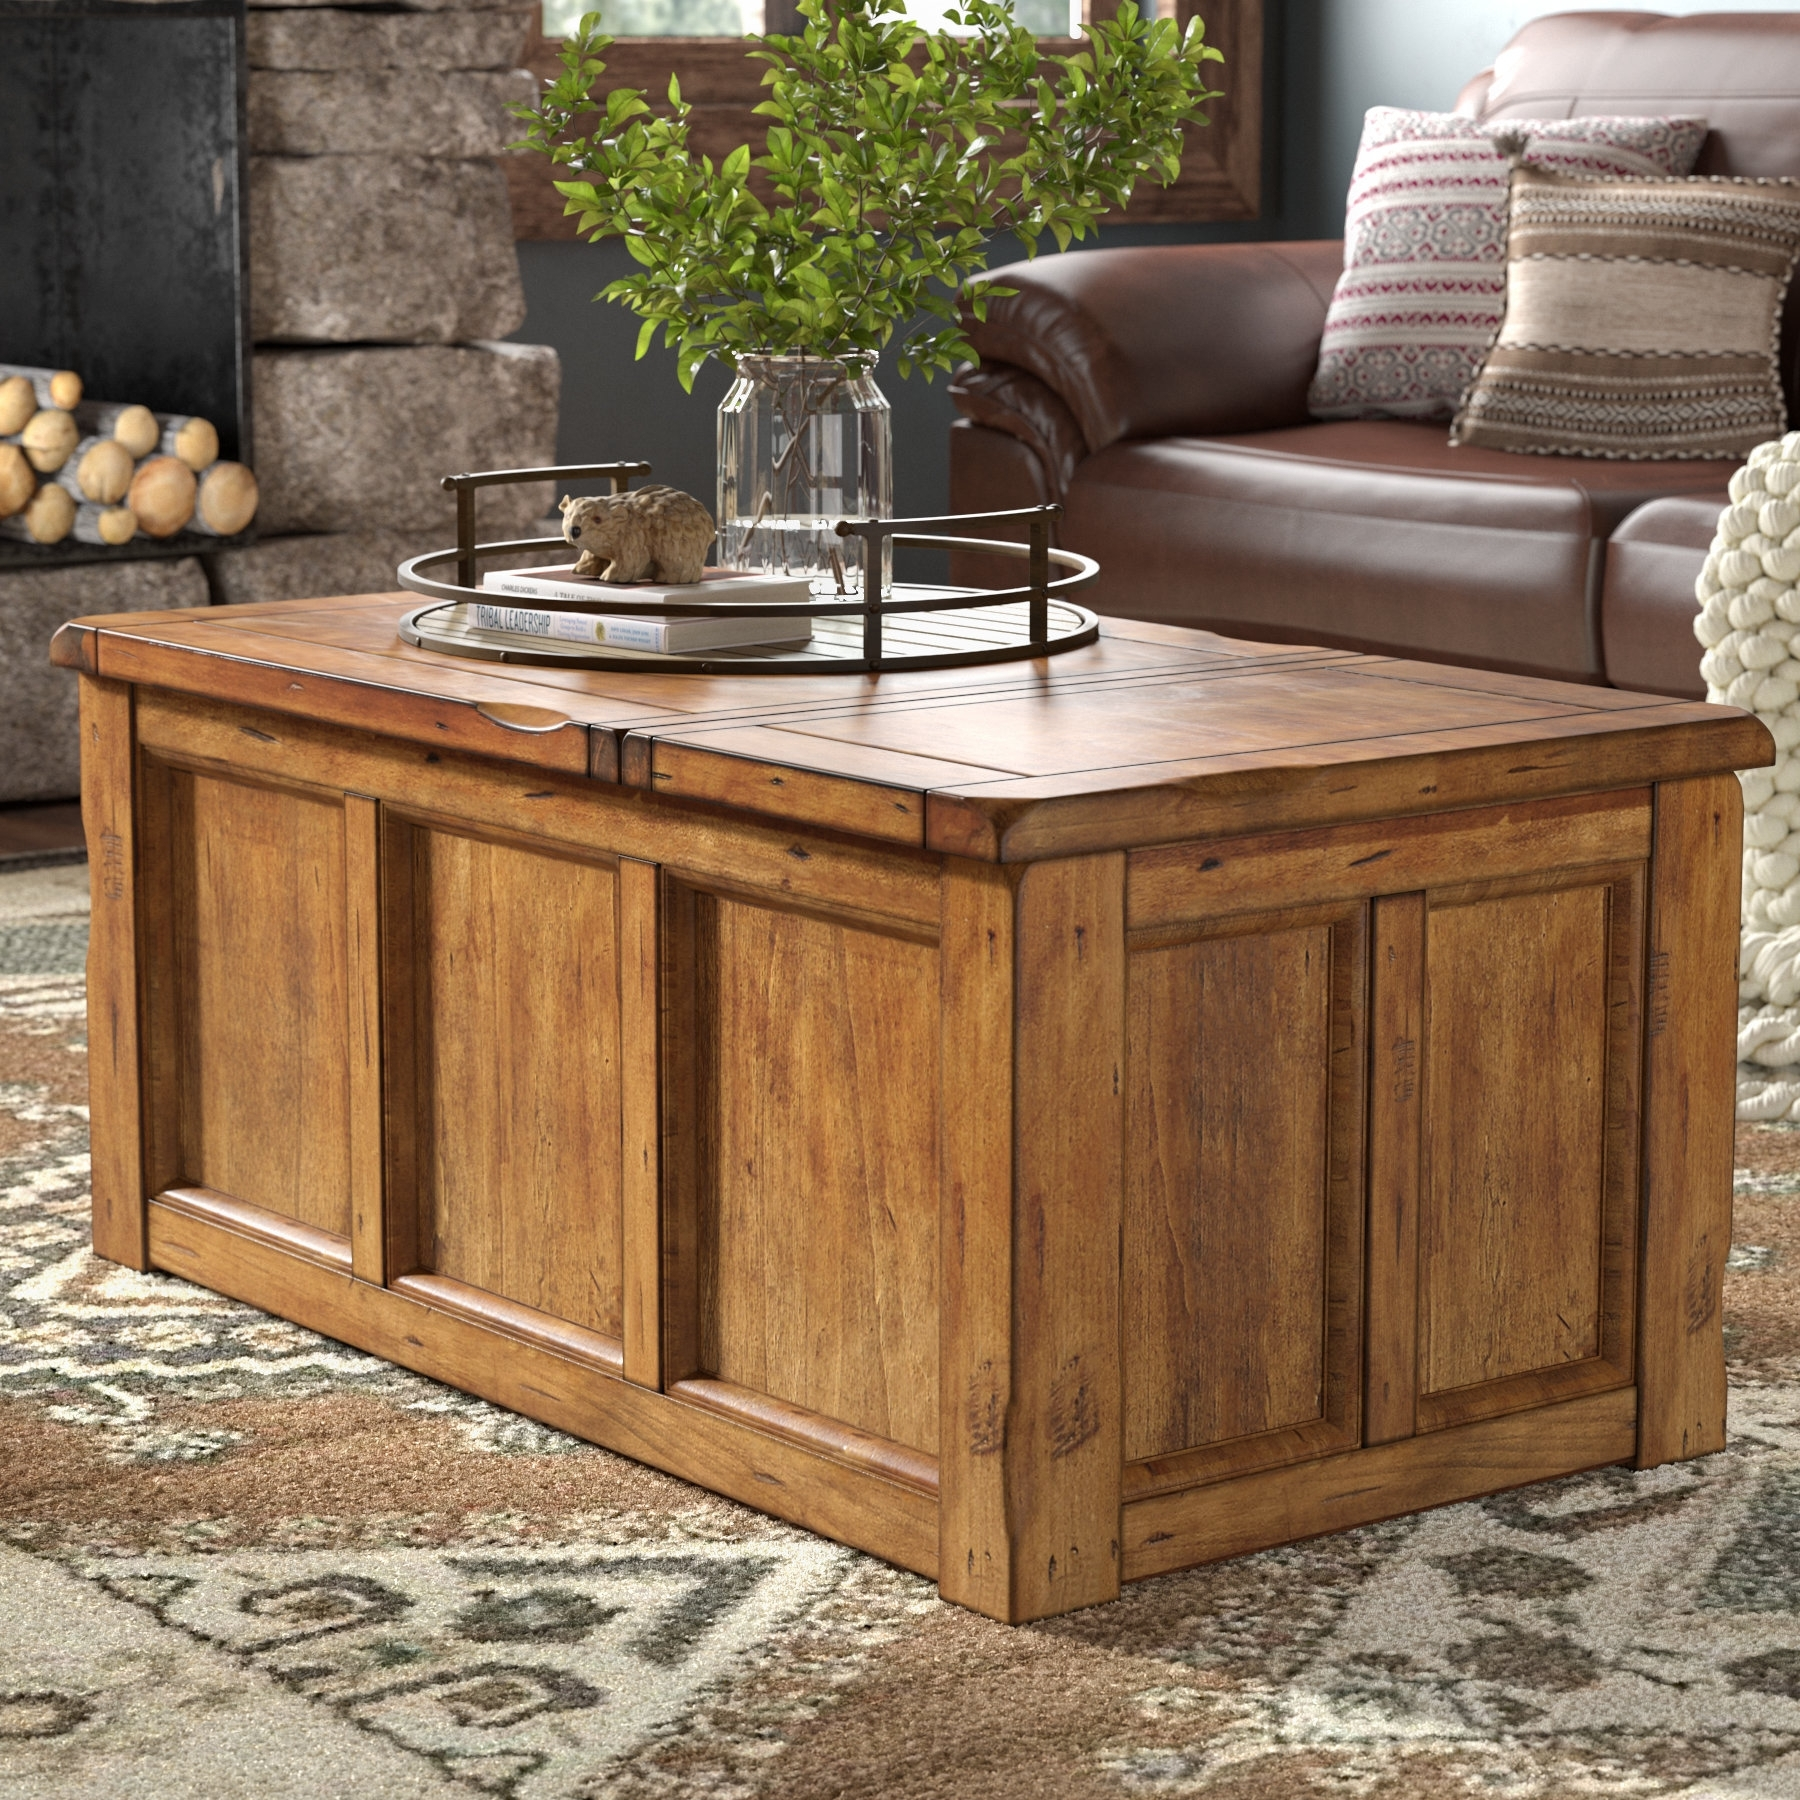 Laurel Foundry Modern Farmhouse Baggarly Coffee Table With Lift Top intended for Large-Scale Chinese Farmhouse Coffee Tables (Image 16 of 30)